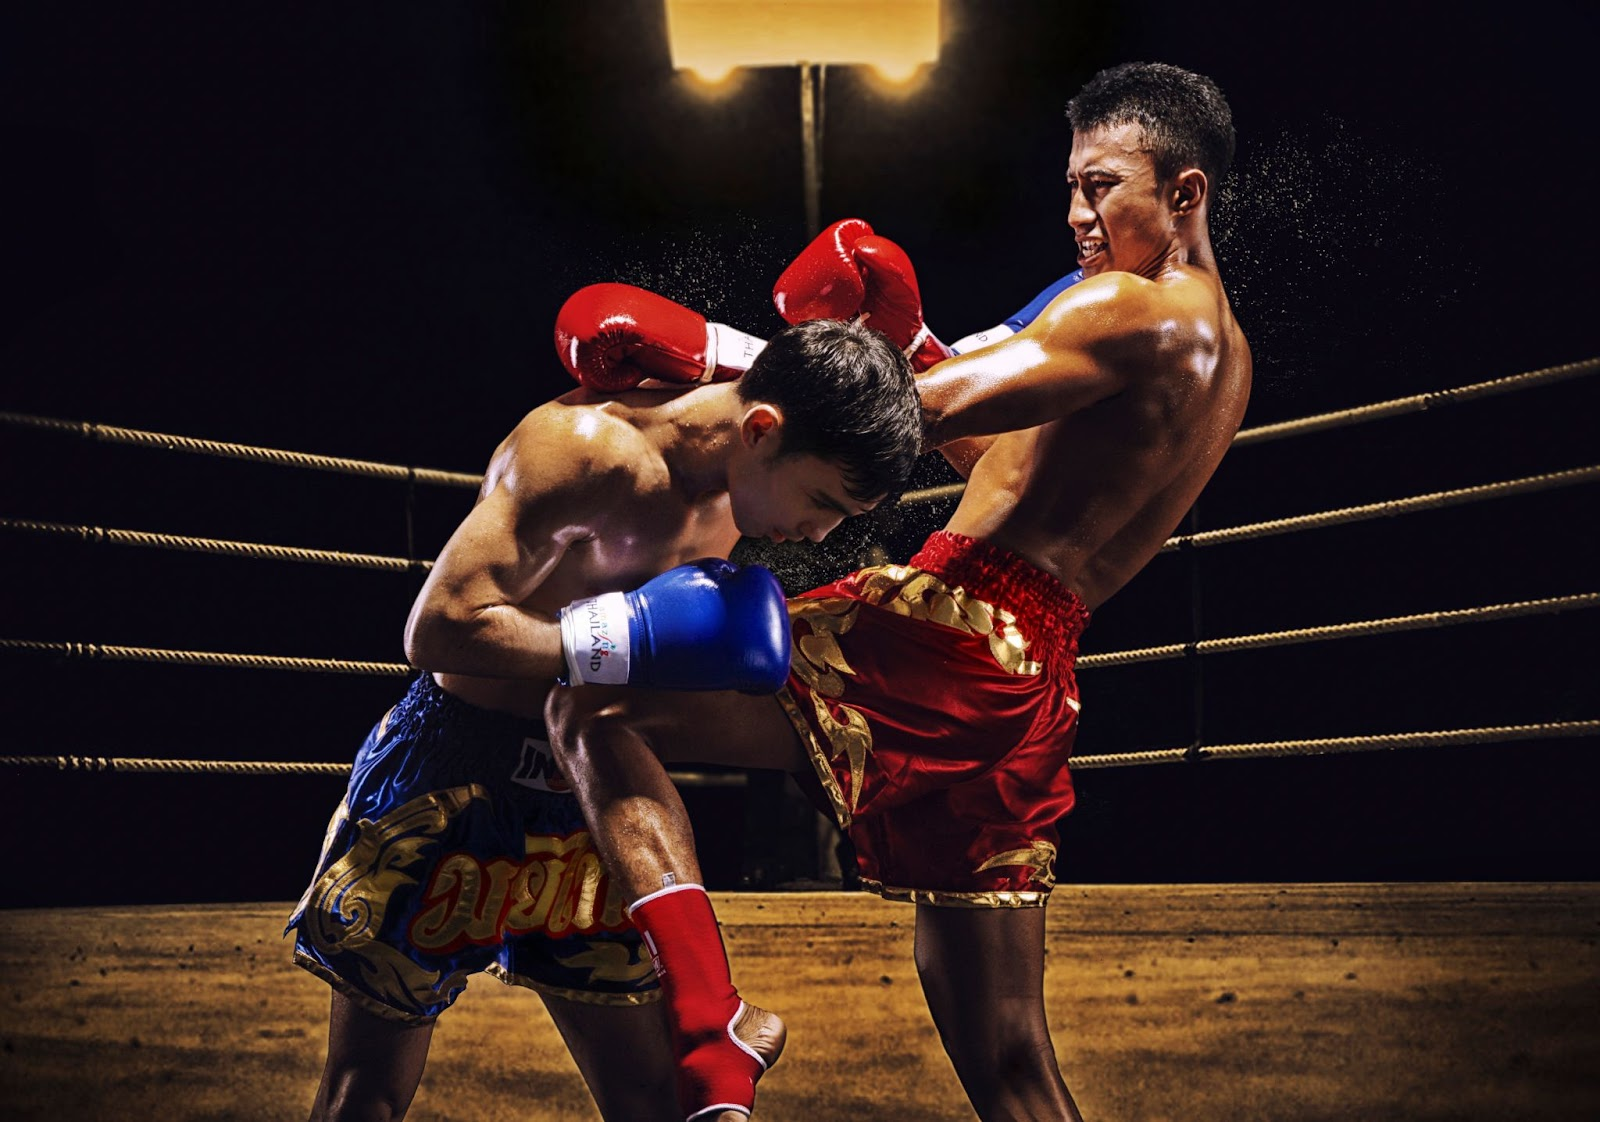 Visitors can learn Thailand's traditional martial art, Muay Thai